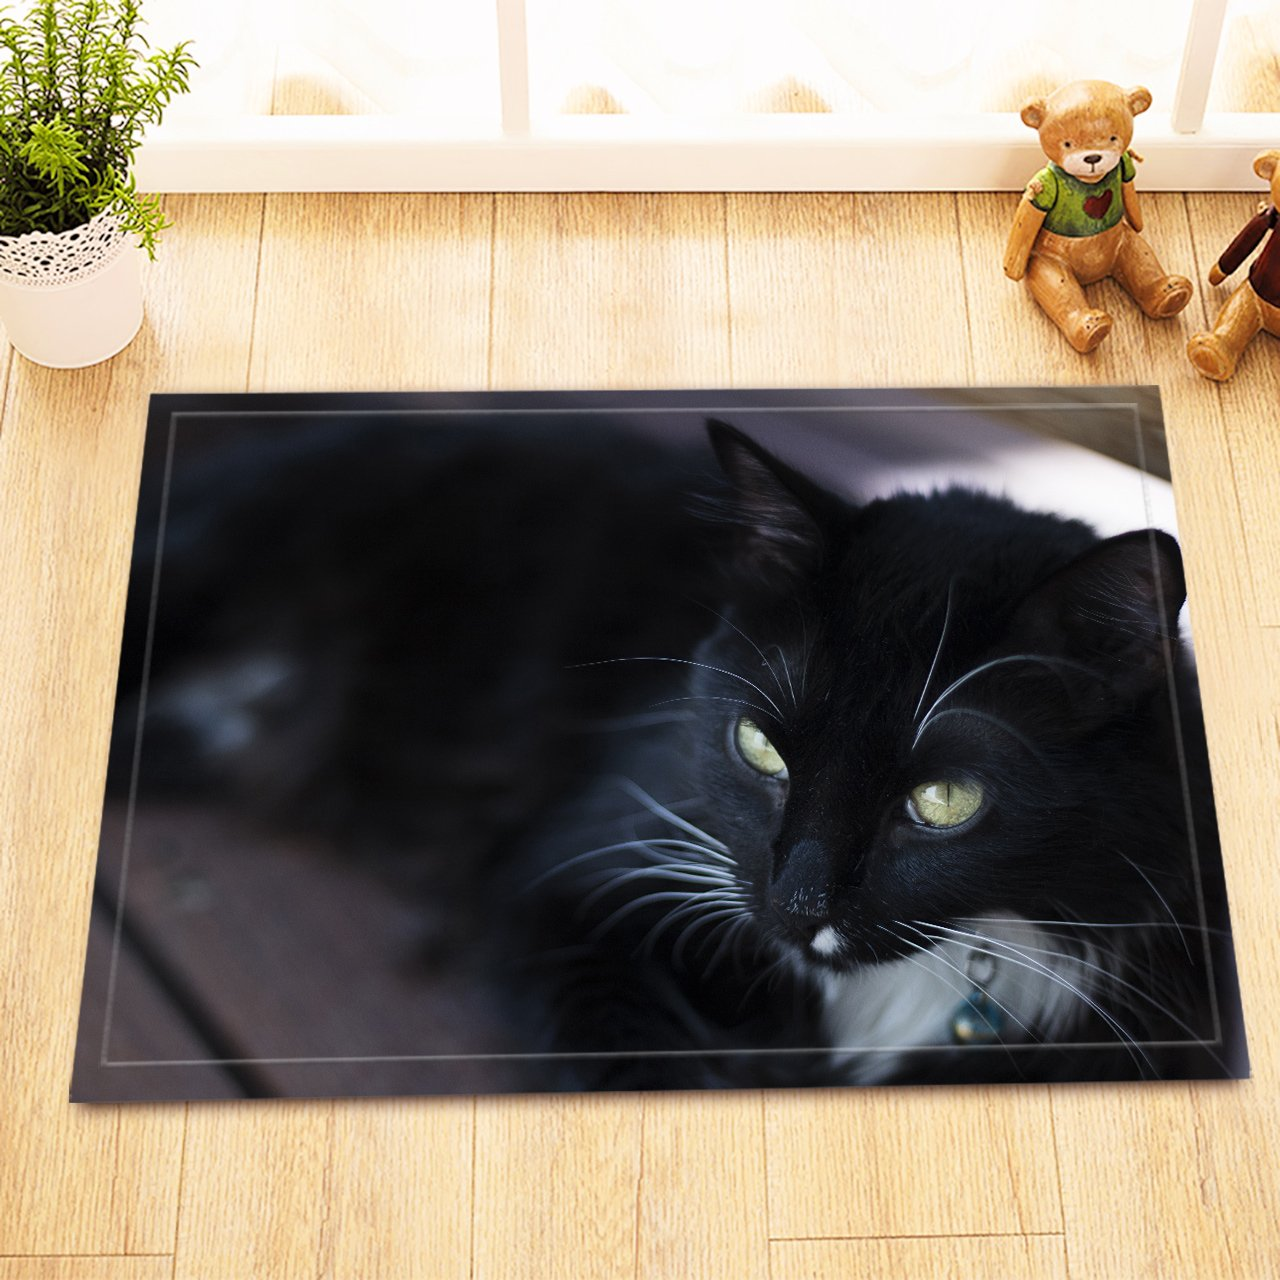 LB Black Cat Print Bathroom Rugs, Anti Skip Rubber Backing Comfortable Soft Surface, Pet Kitten Printed Rug for Bathroom 15 x 23 Inches